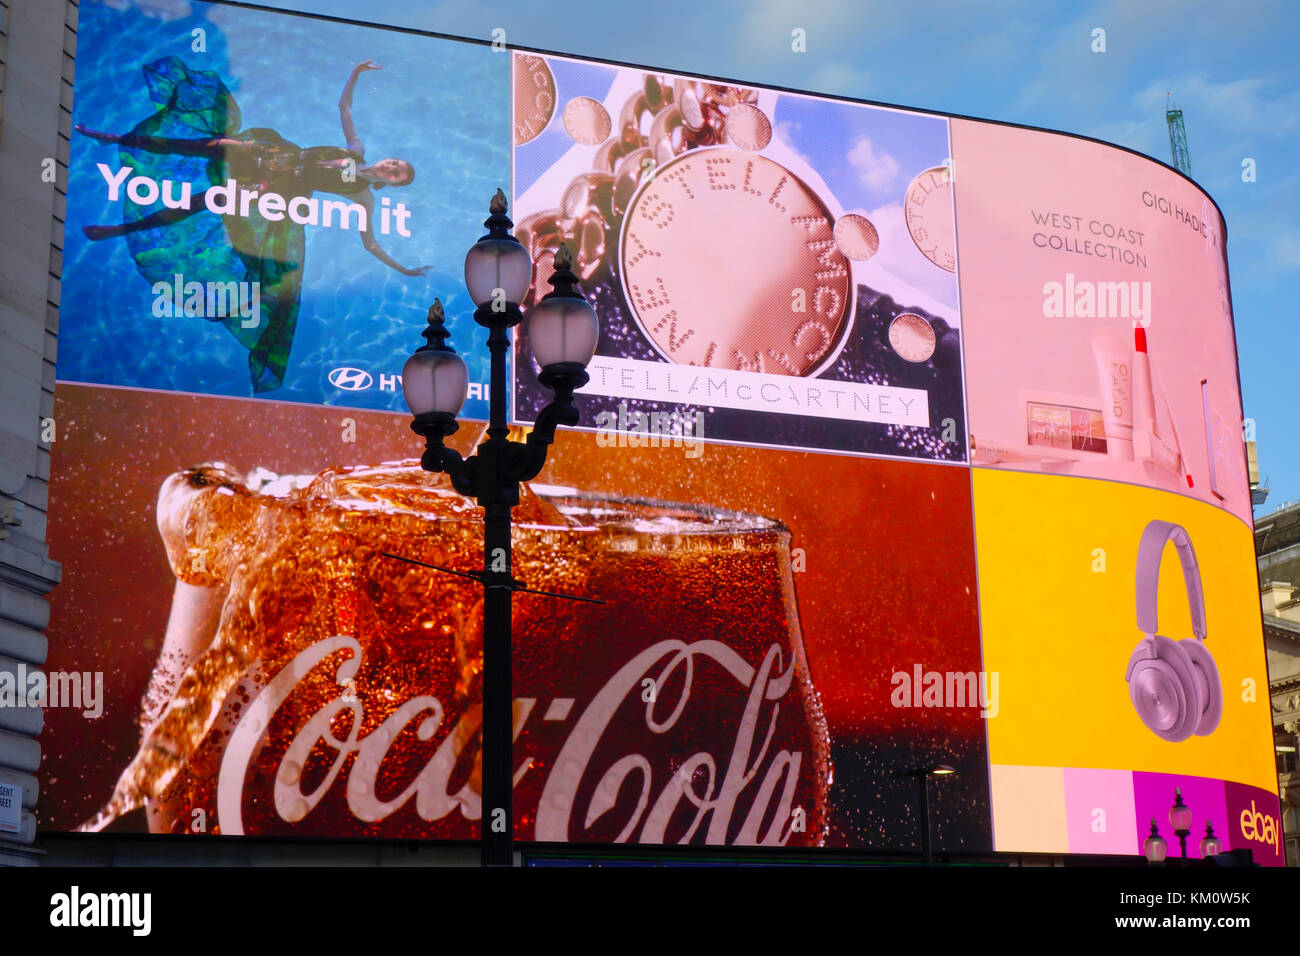 """The iconic Piccadilly Lights, now known as """"The Curve"""" at Piccadilly Circus, London. Stock Photo"""